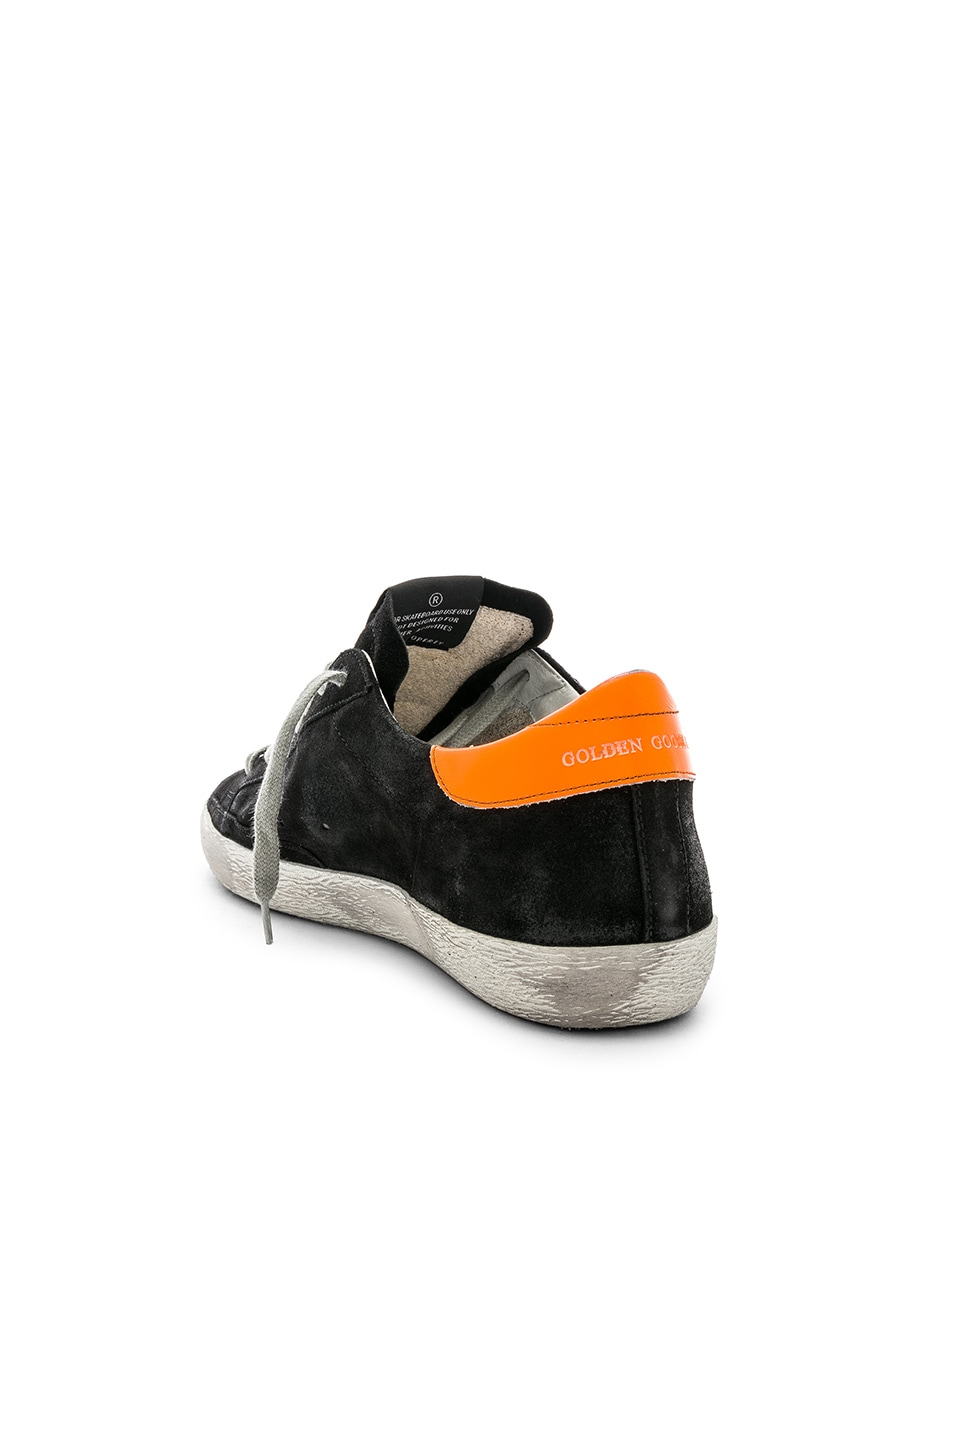 Golden Goose Superstar Sneaker Black & Silver 70%OFF